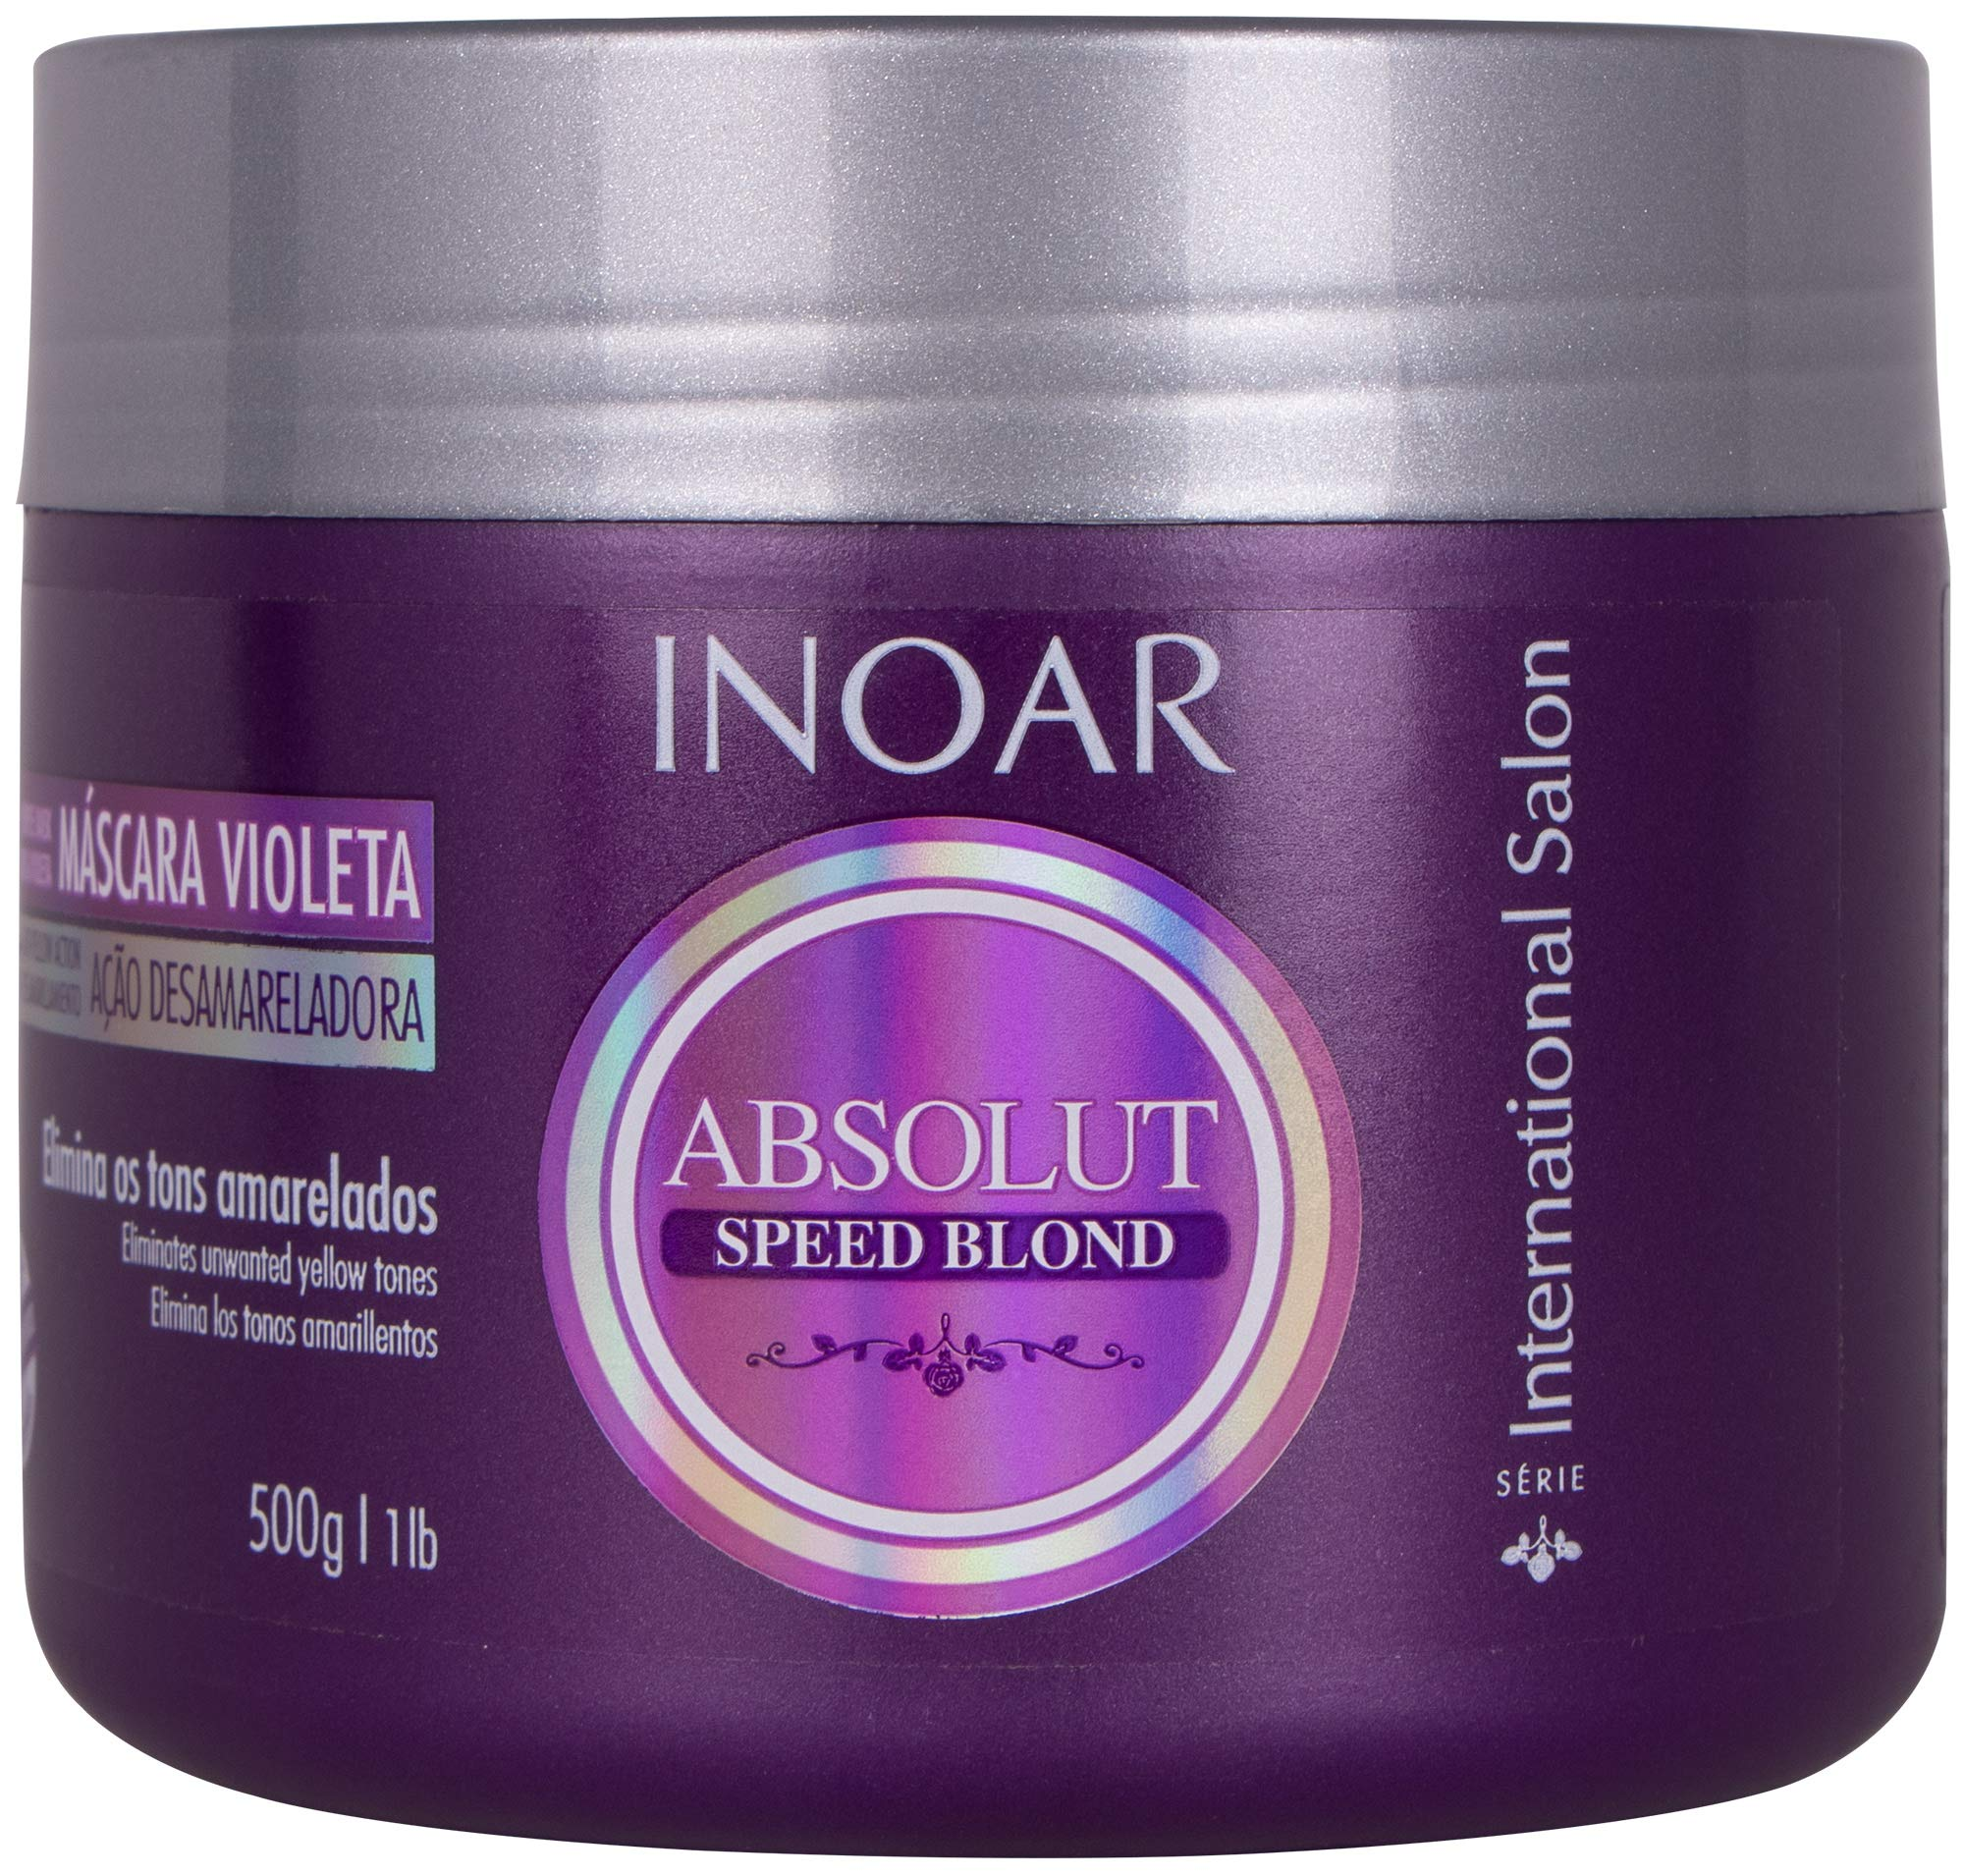 INOAR PROFESSIONAL - Speed Blond Mask - Anti-Yellowing Nourishing Treatment For Bleached, Blond, Brassy & Gray Hair Types (16 Ounces / 500 Grams) by Inoar